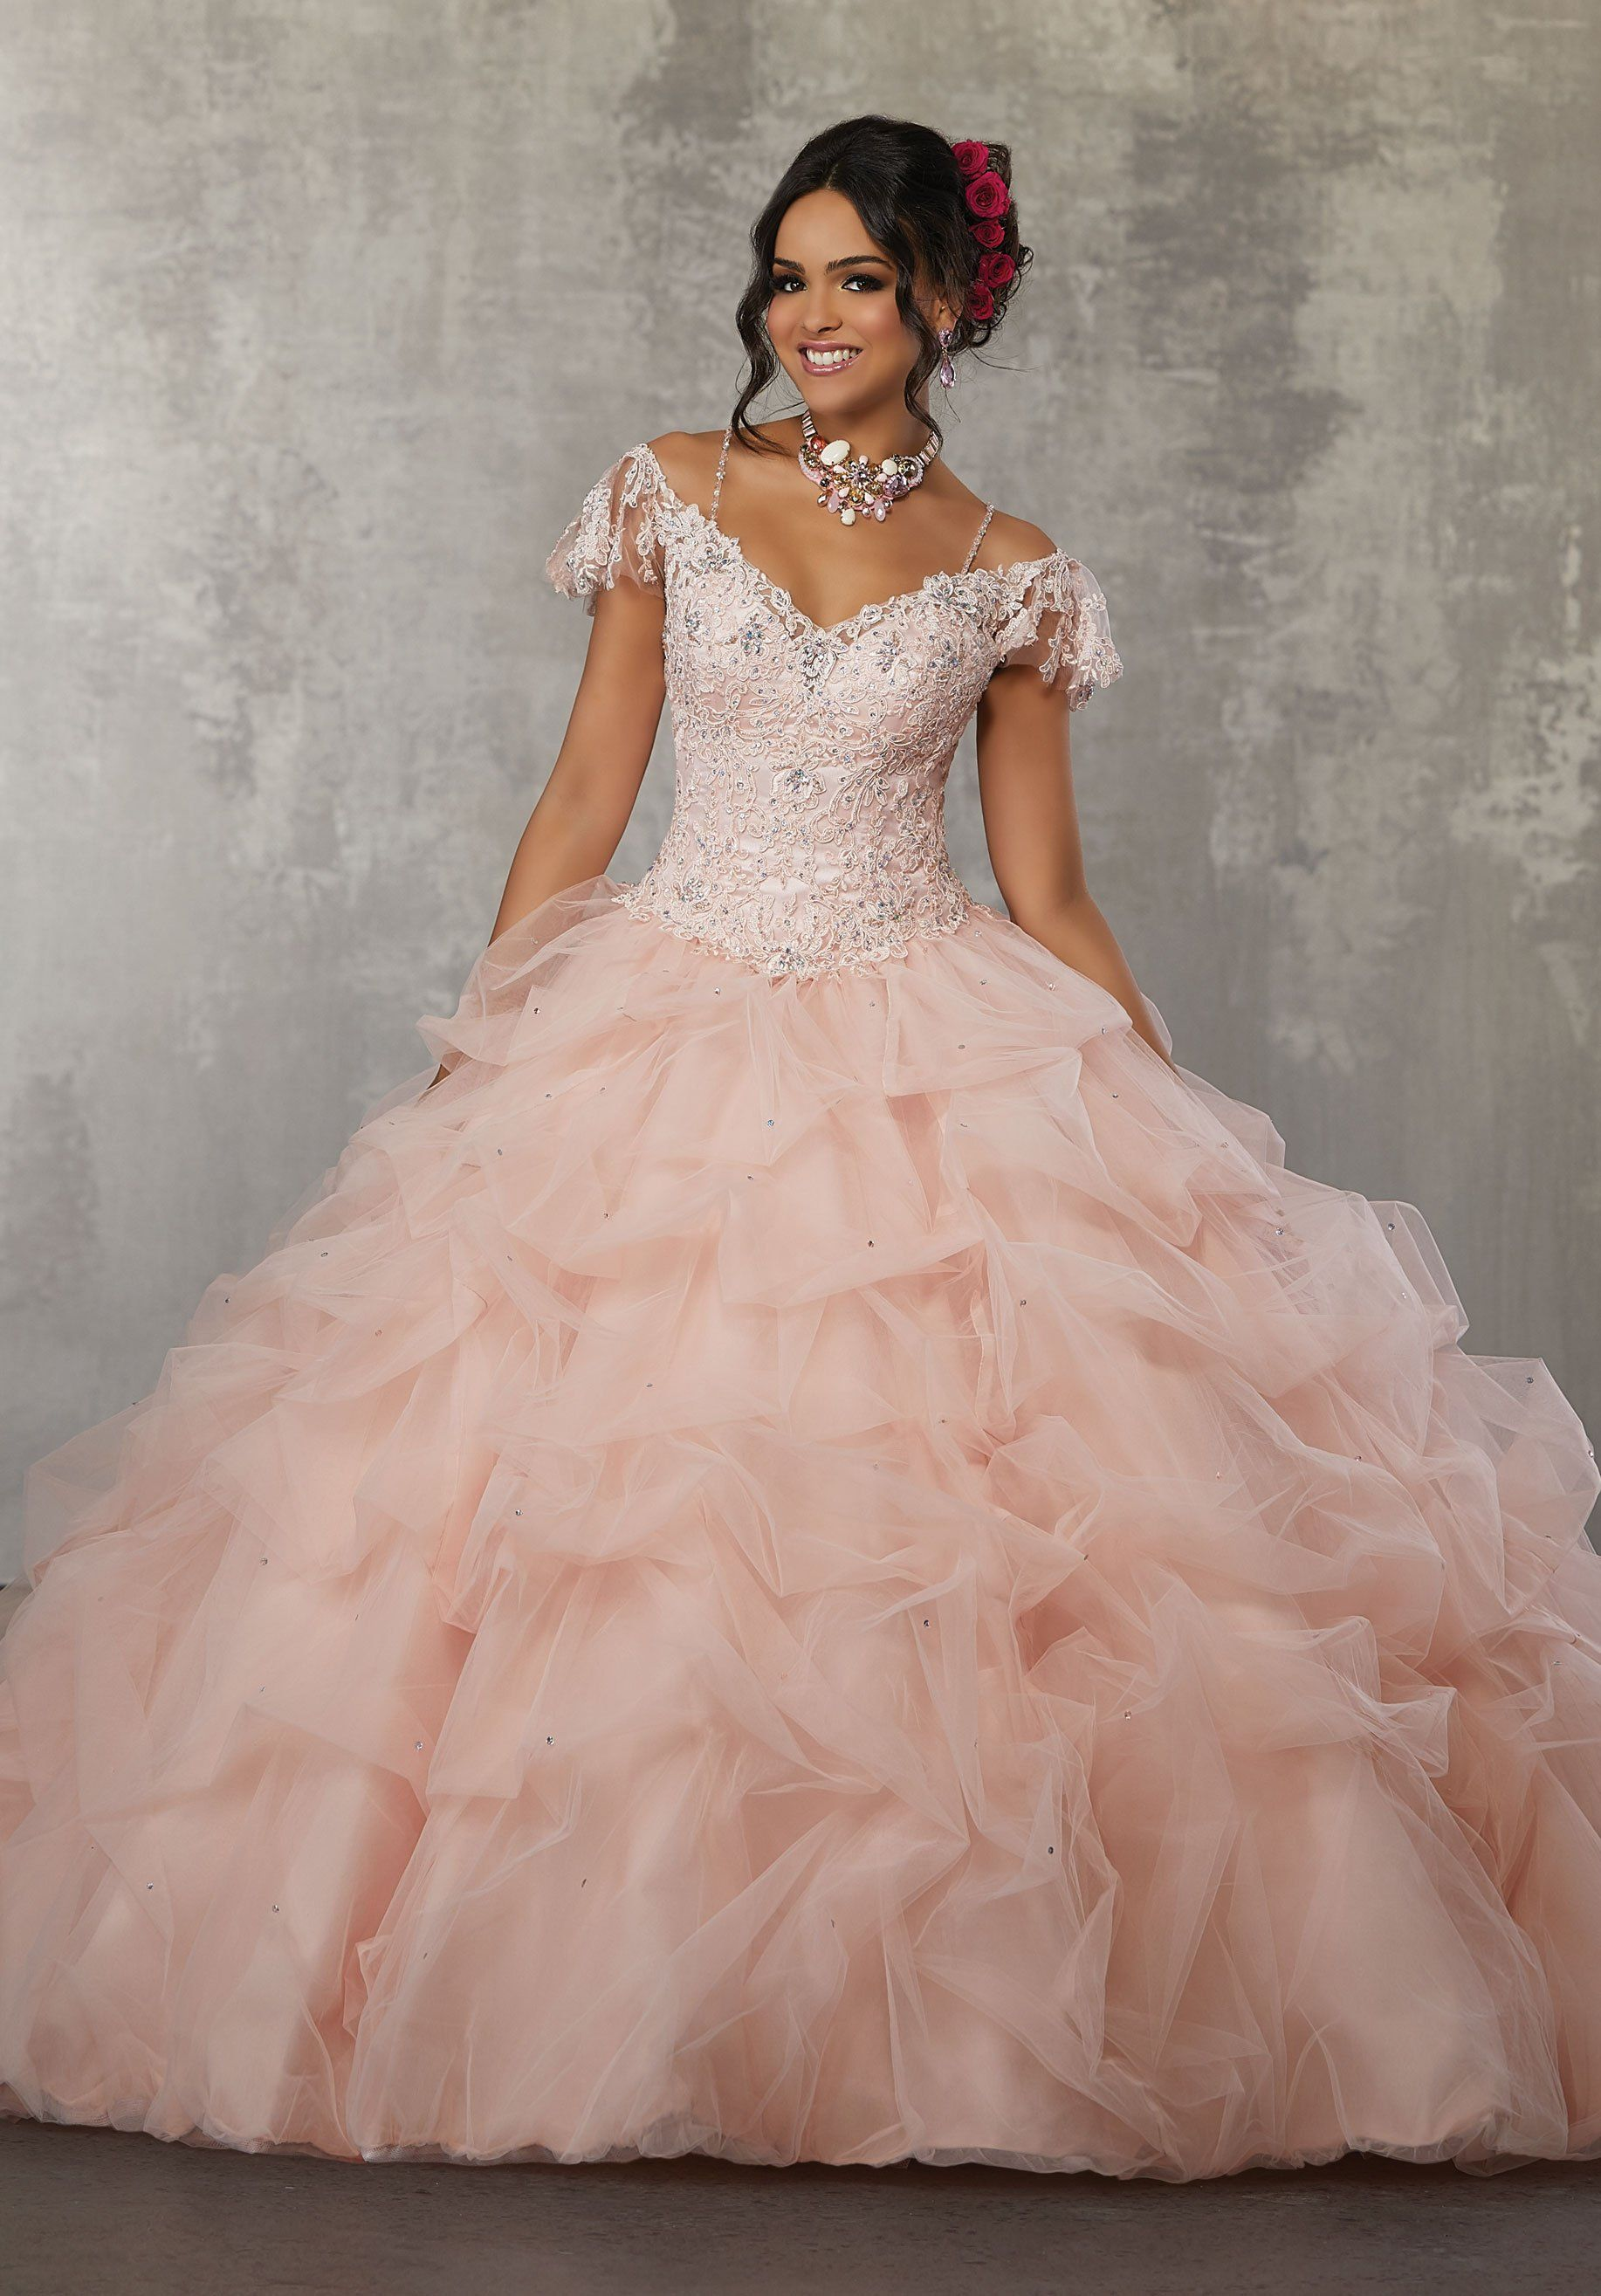 Off the Shoulder Lace Quinceanera Dress by Mori Lee Valencia 60034